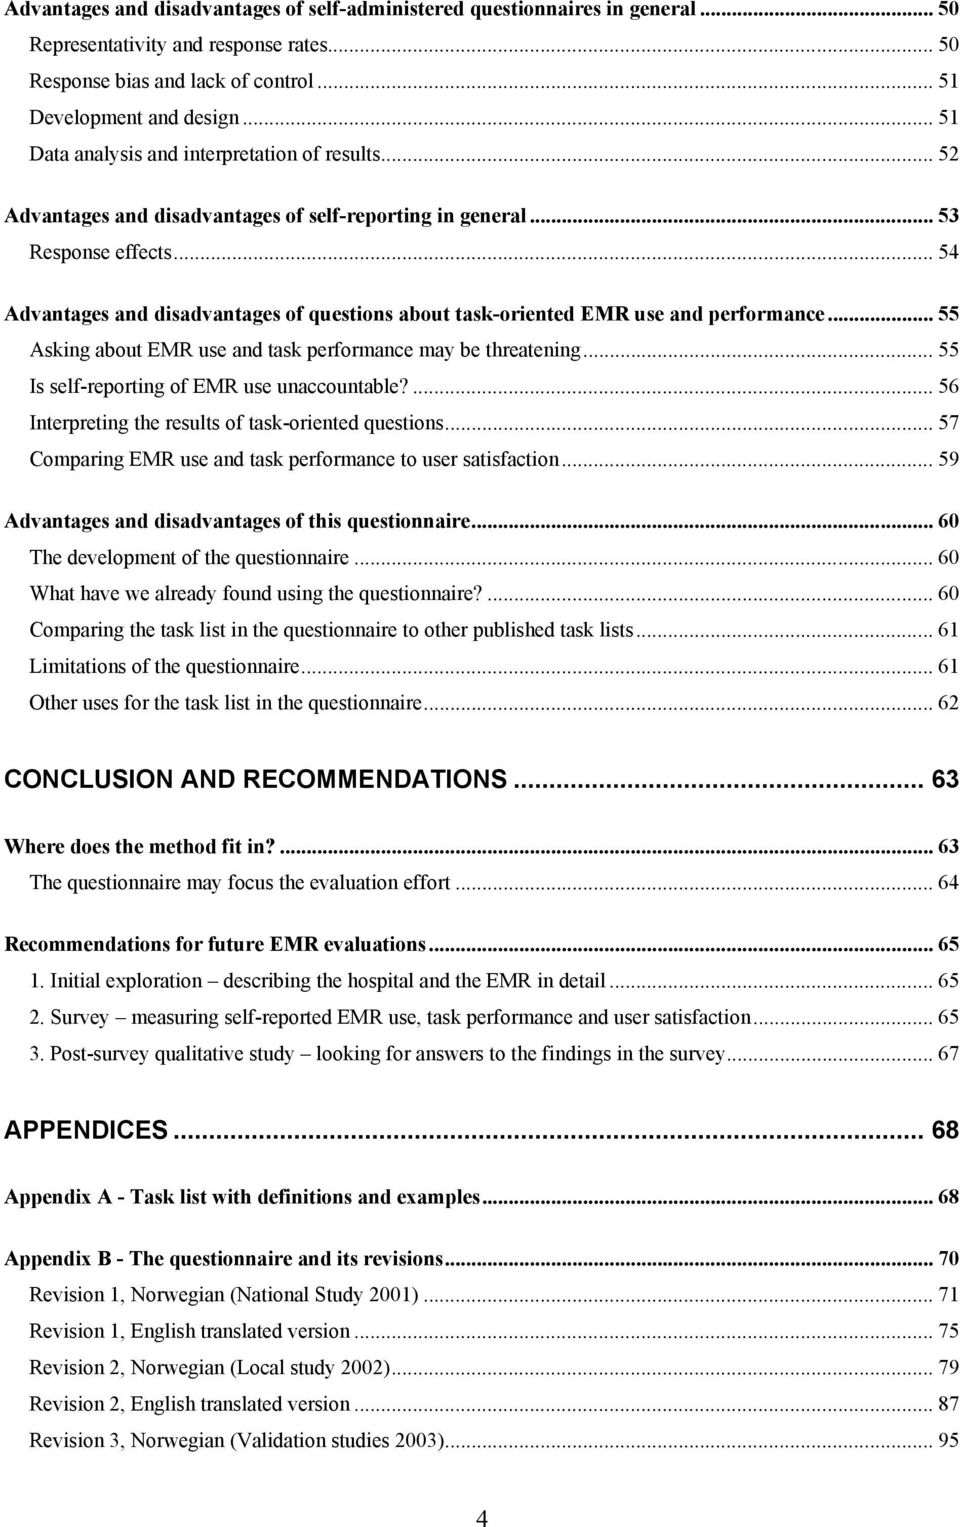 .. 54 Advantages and disadvantages of questions about task-oriented EMR use and performance... 55 Asking about EMR use and task performance may be threatening.